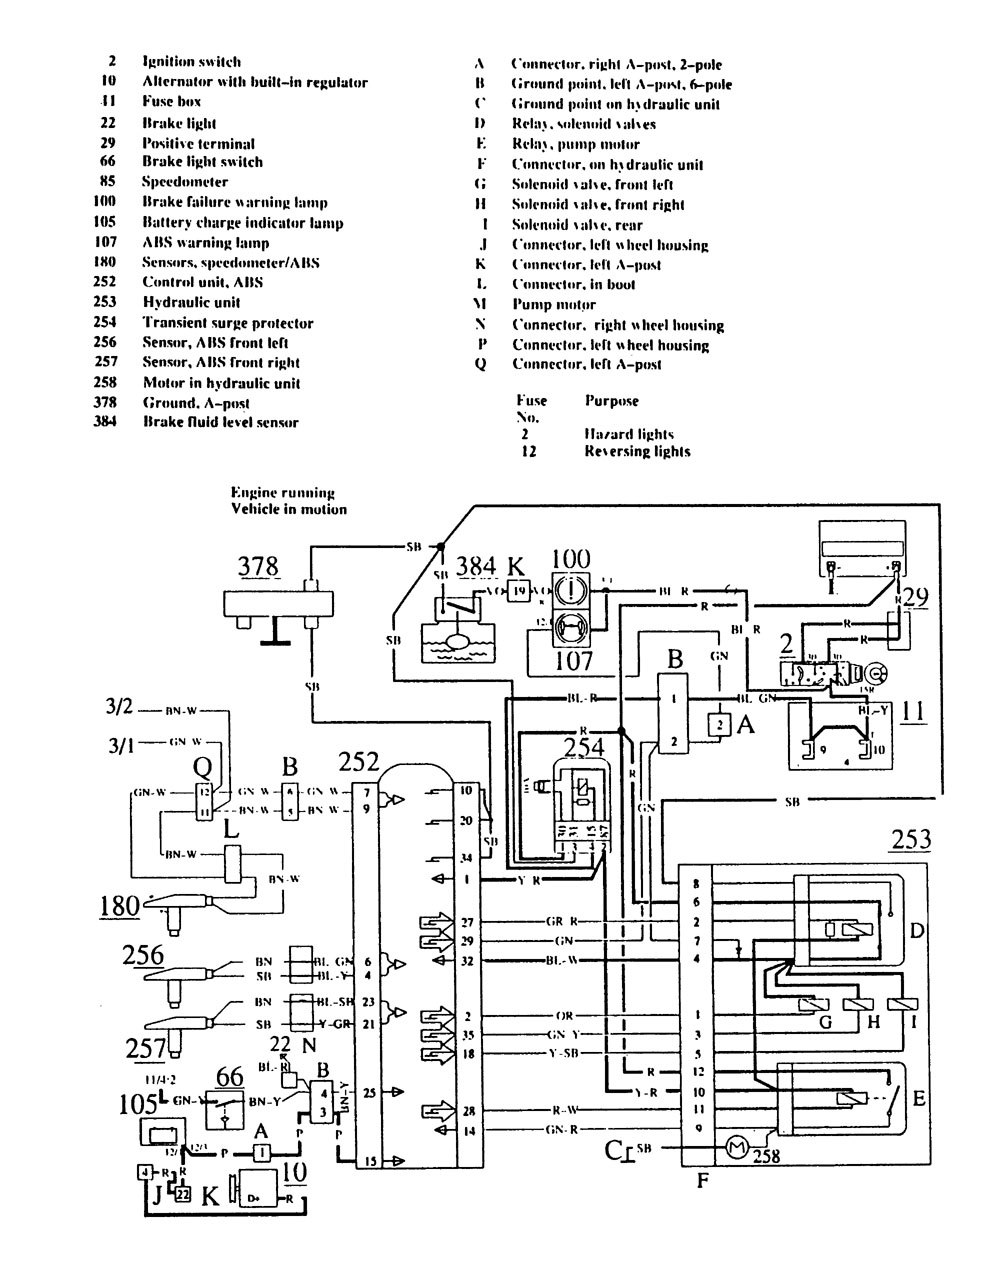 hight resolution of 91 volvo 740 fuse box diagram volvo 740 starter wiring xc90 fuse diagram 2004 volvo s40